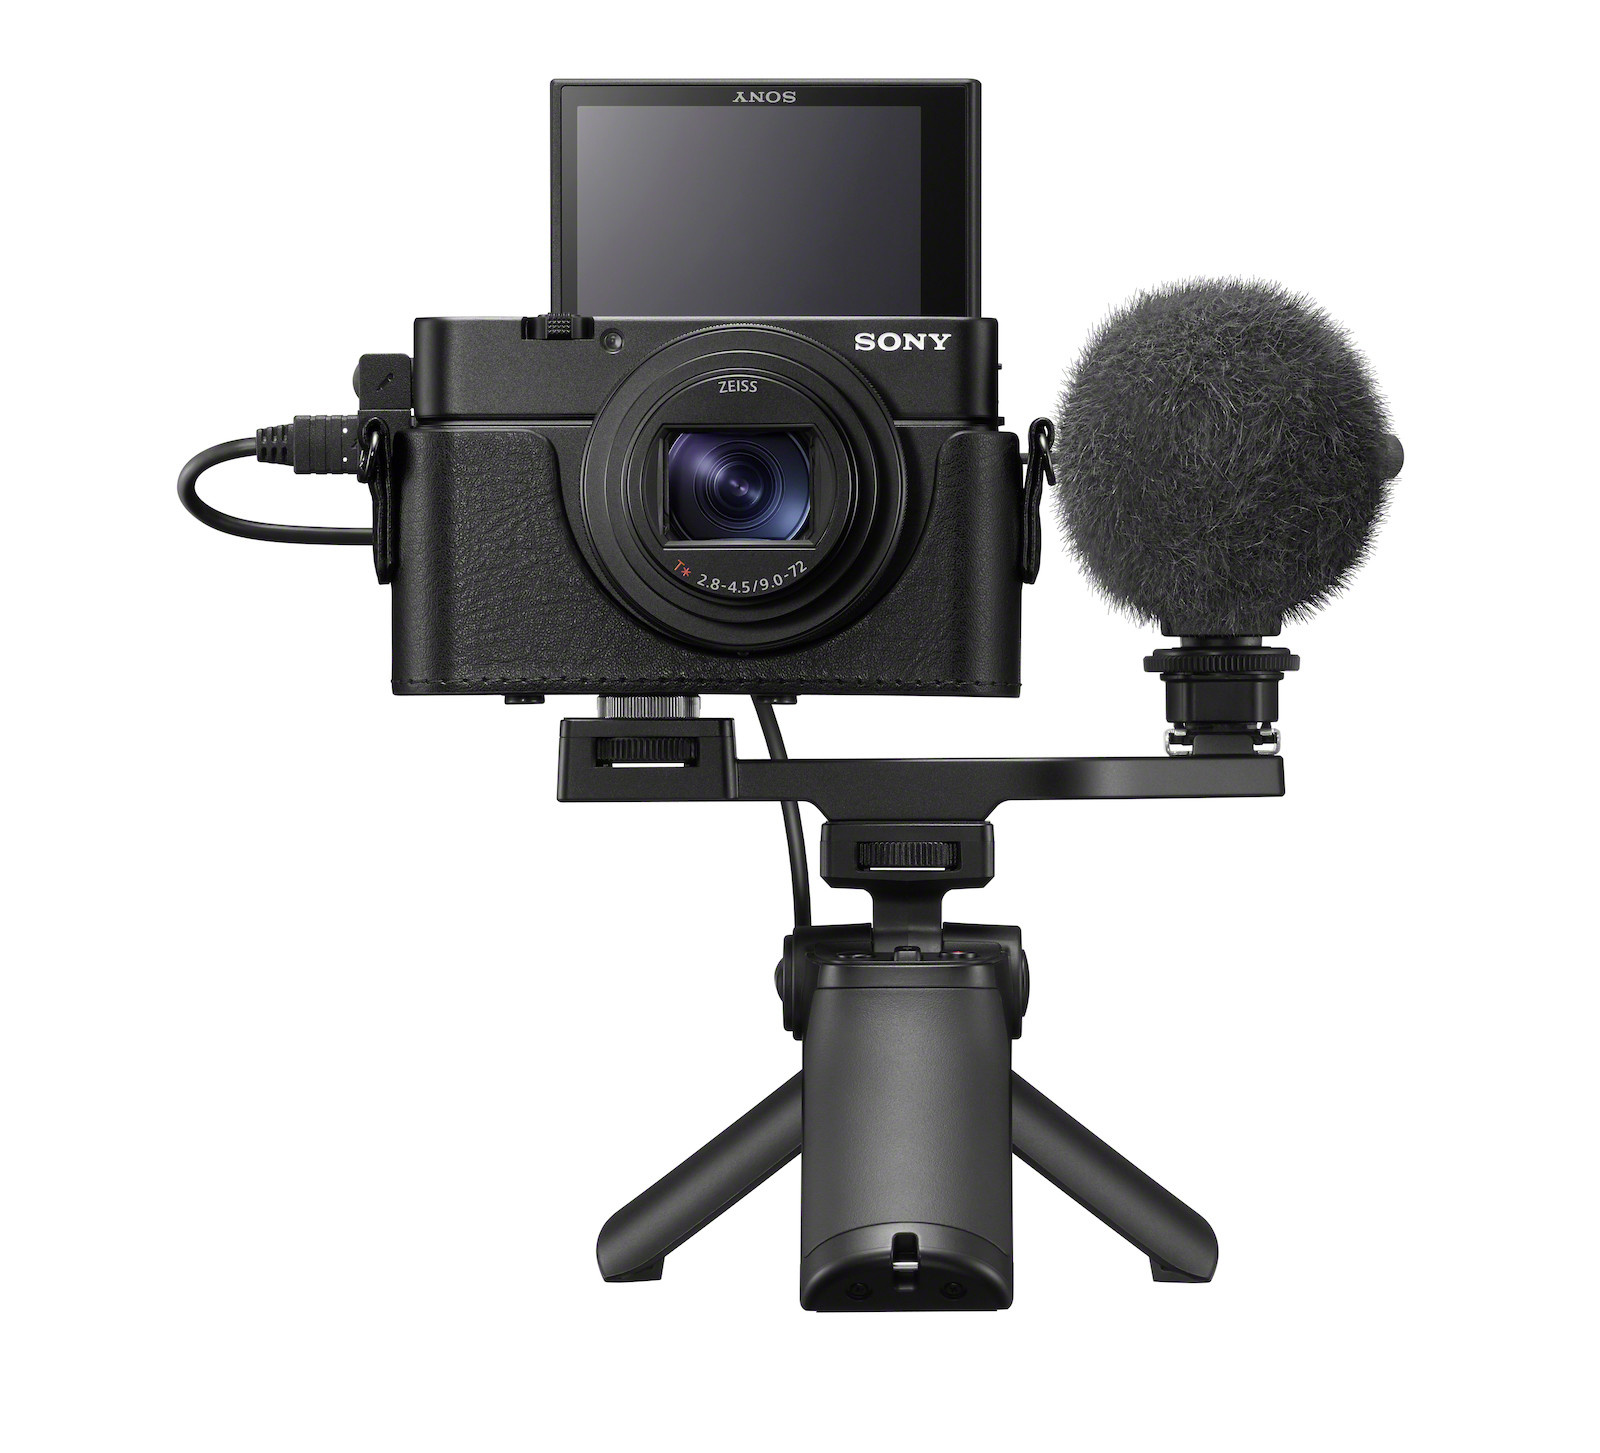 Sony Mirrorless Pro | News and Reviews on Feedspot - Rss Feed